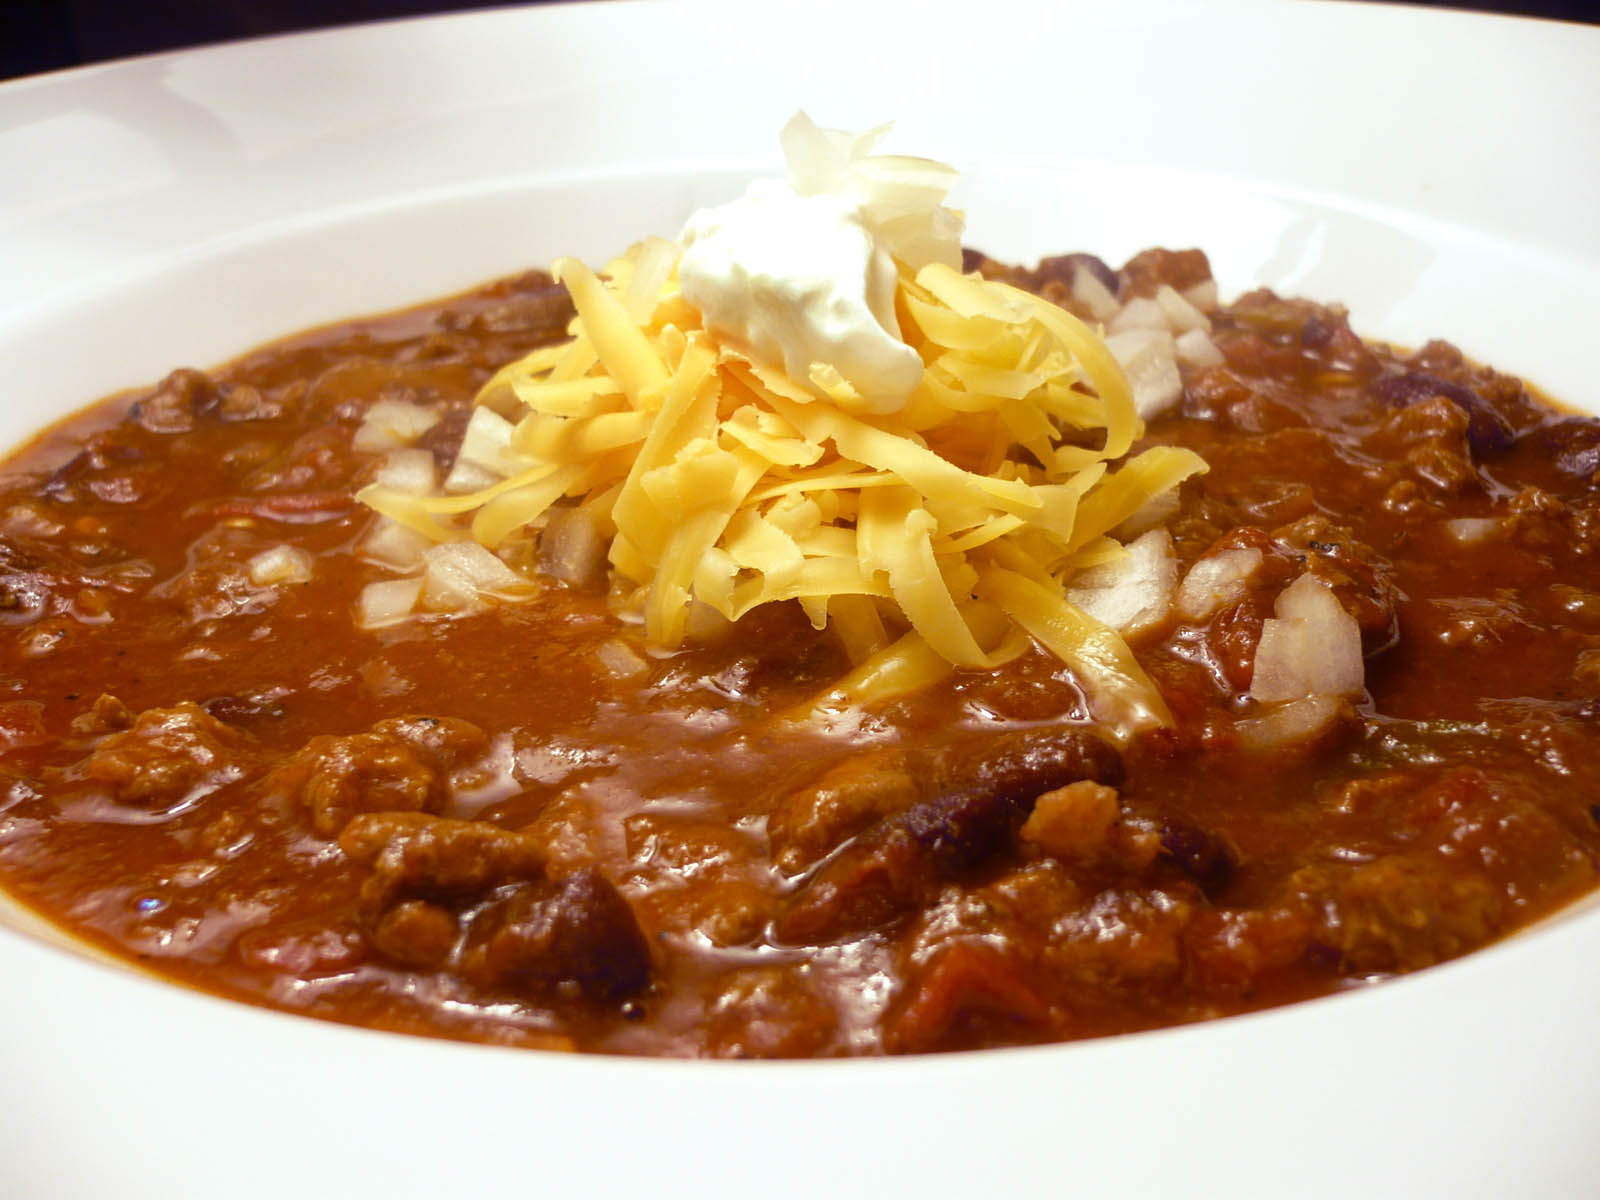 grew up eating chili. Never got to eat any of my grandfather's chili ...